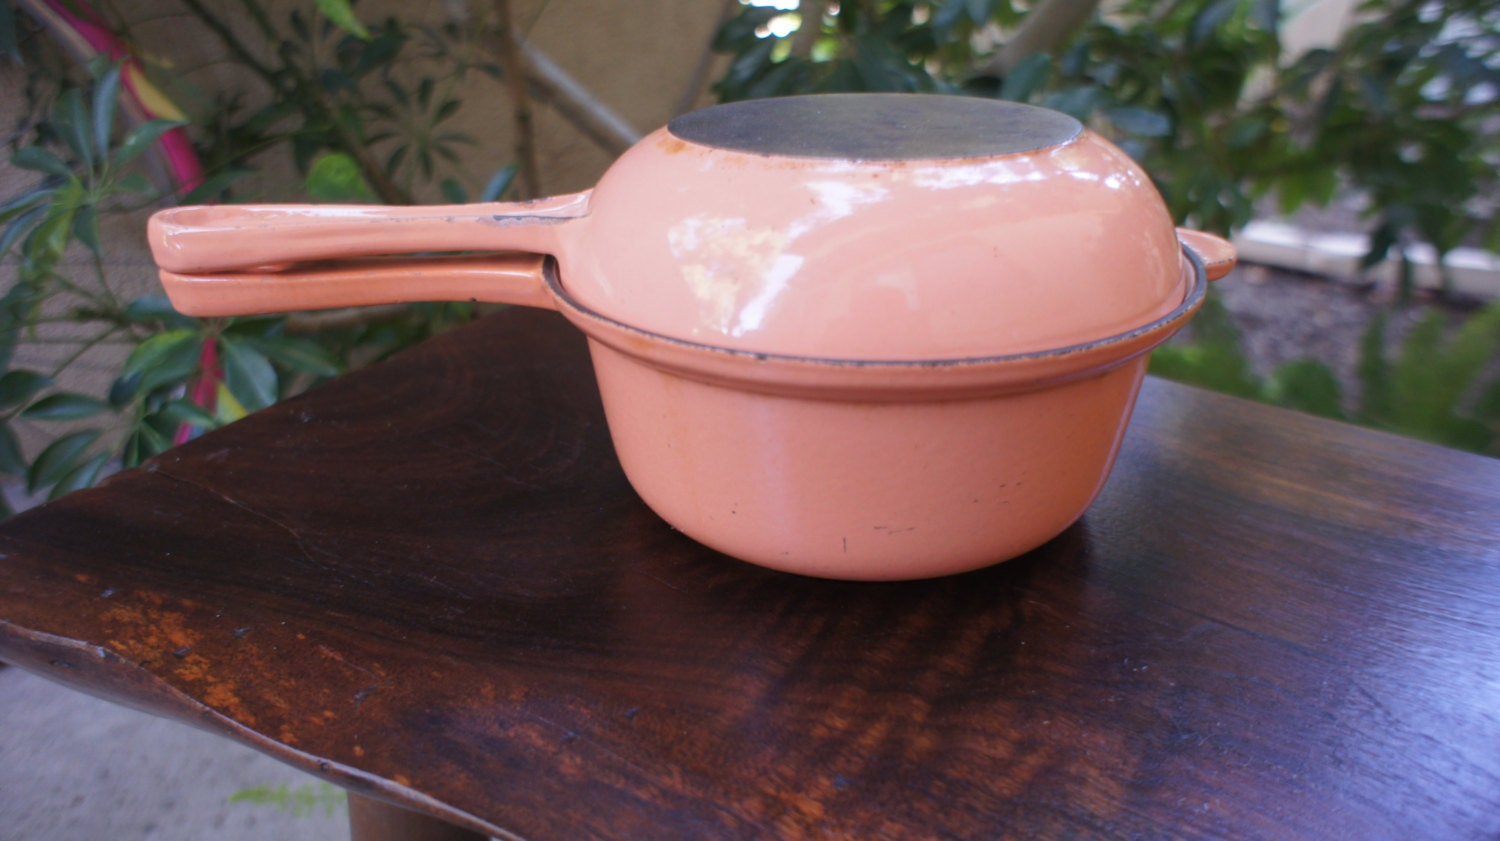 peach pink le creuset set sauce pan frying pan or skillet. Black Bedroom Furniture Sets. Home Design Ideas